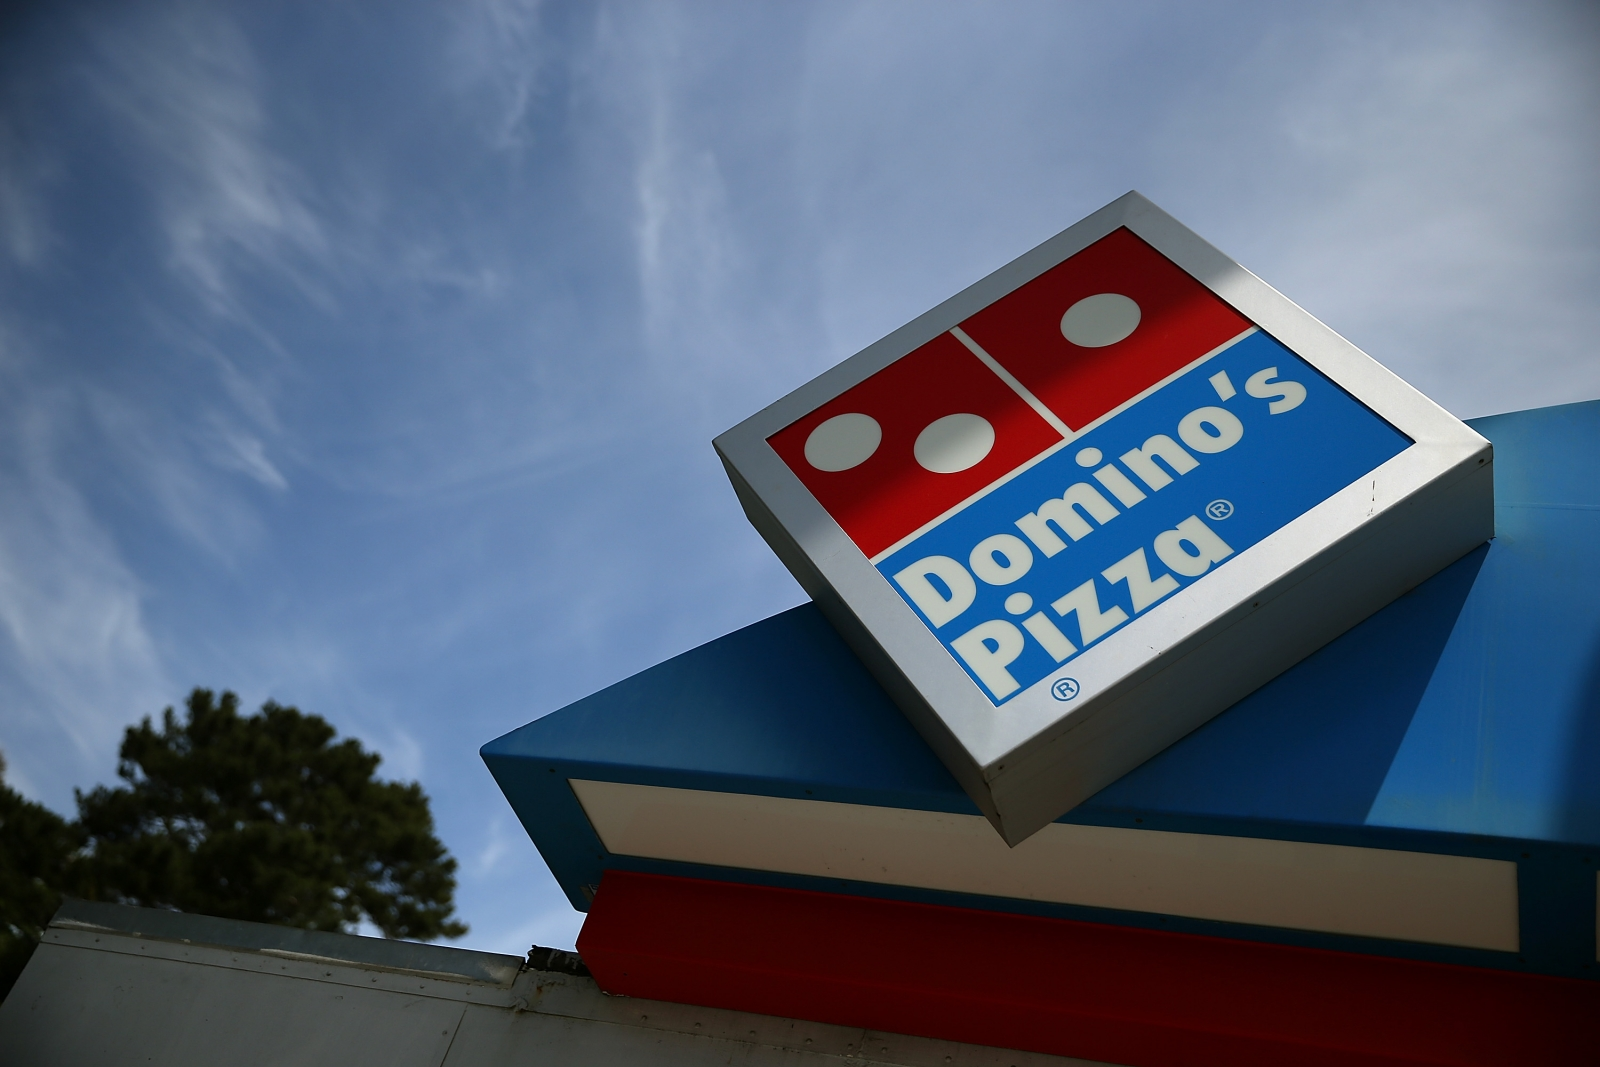 Domino's Pizza Group PLC. (DOM) Upgraded at Canaccord Genuity